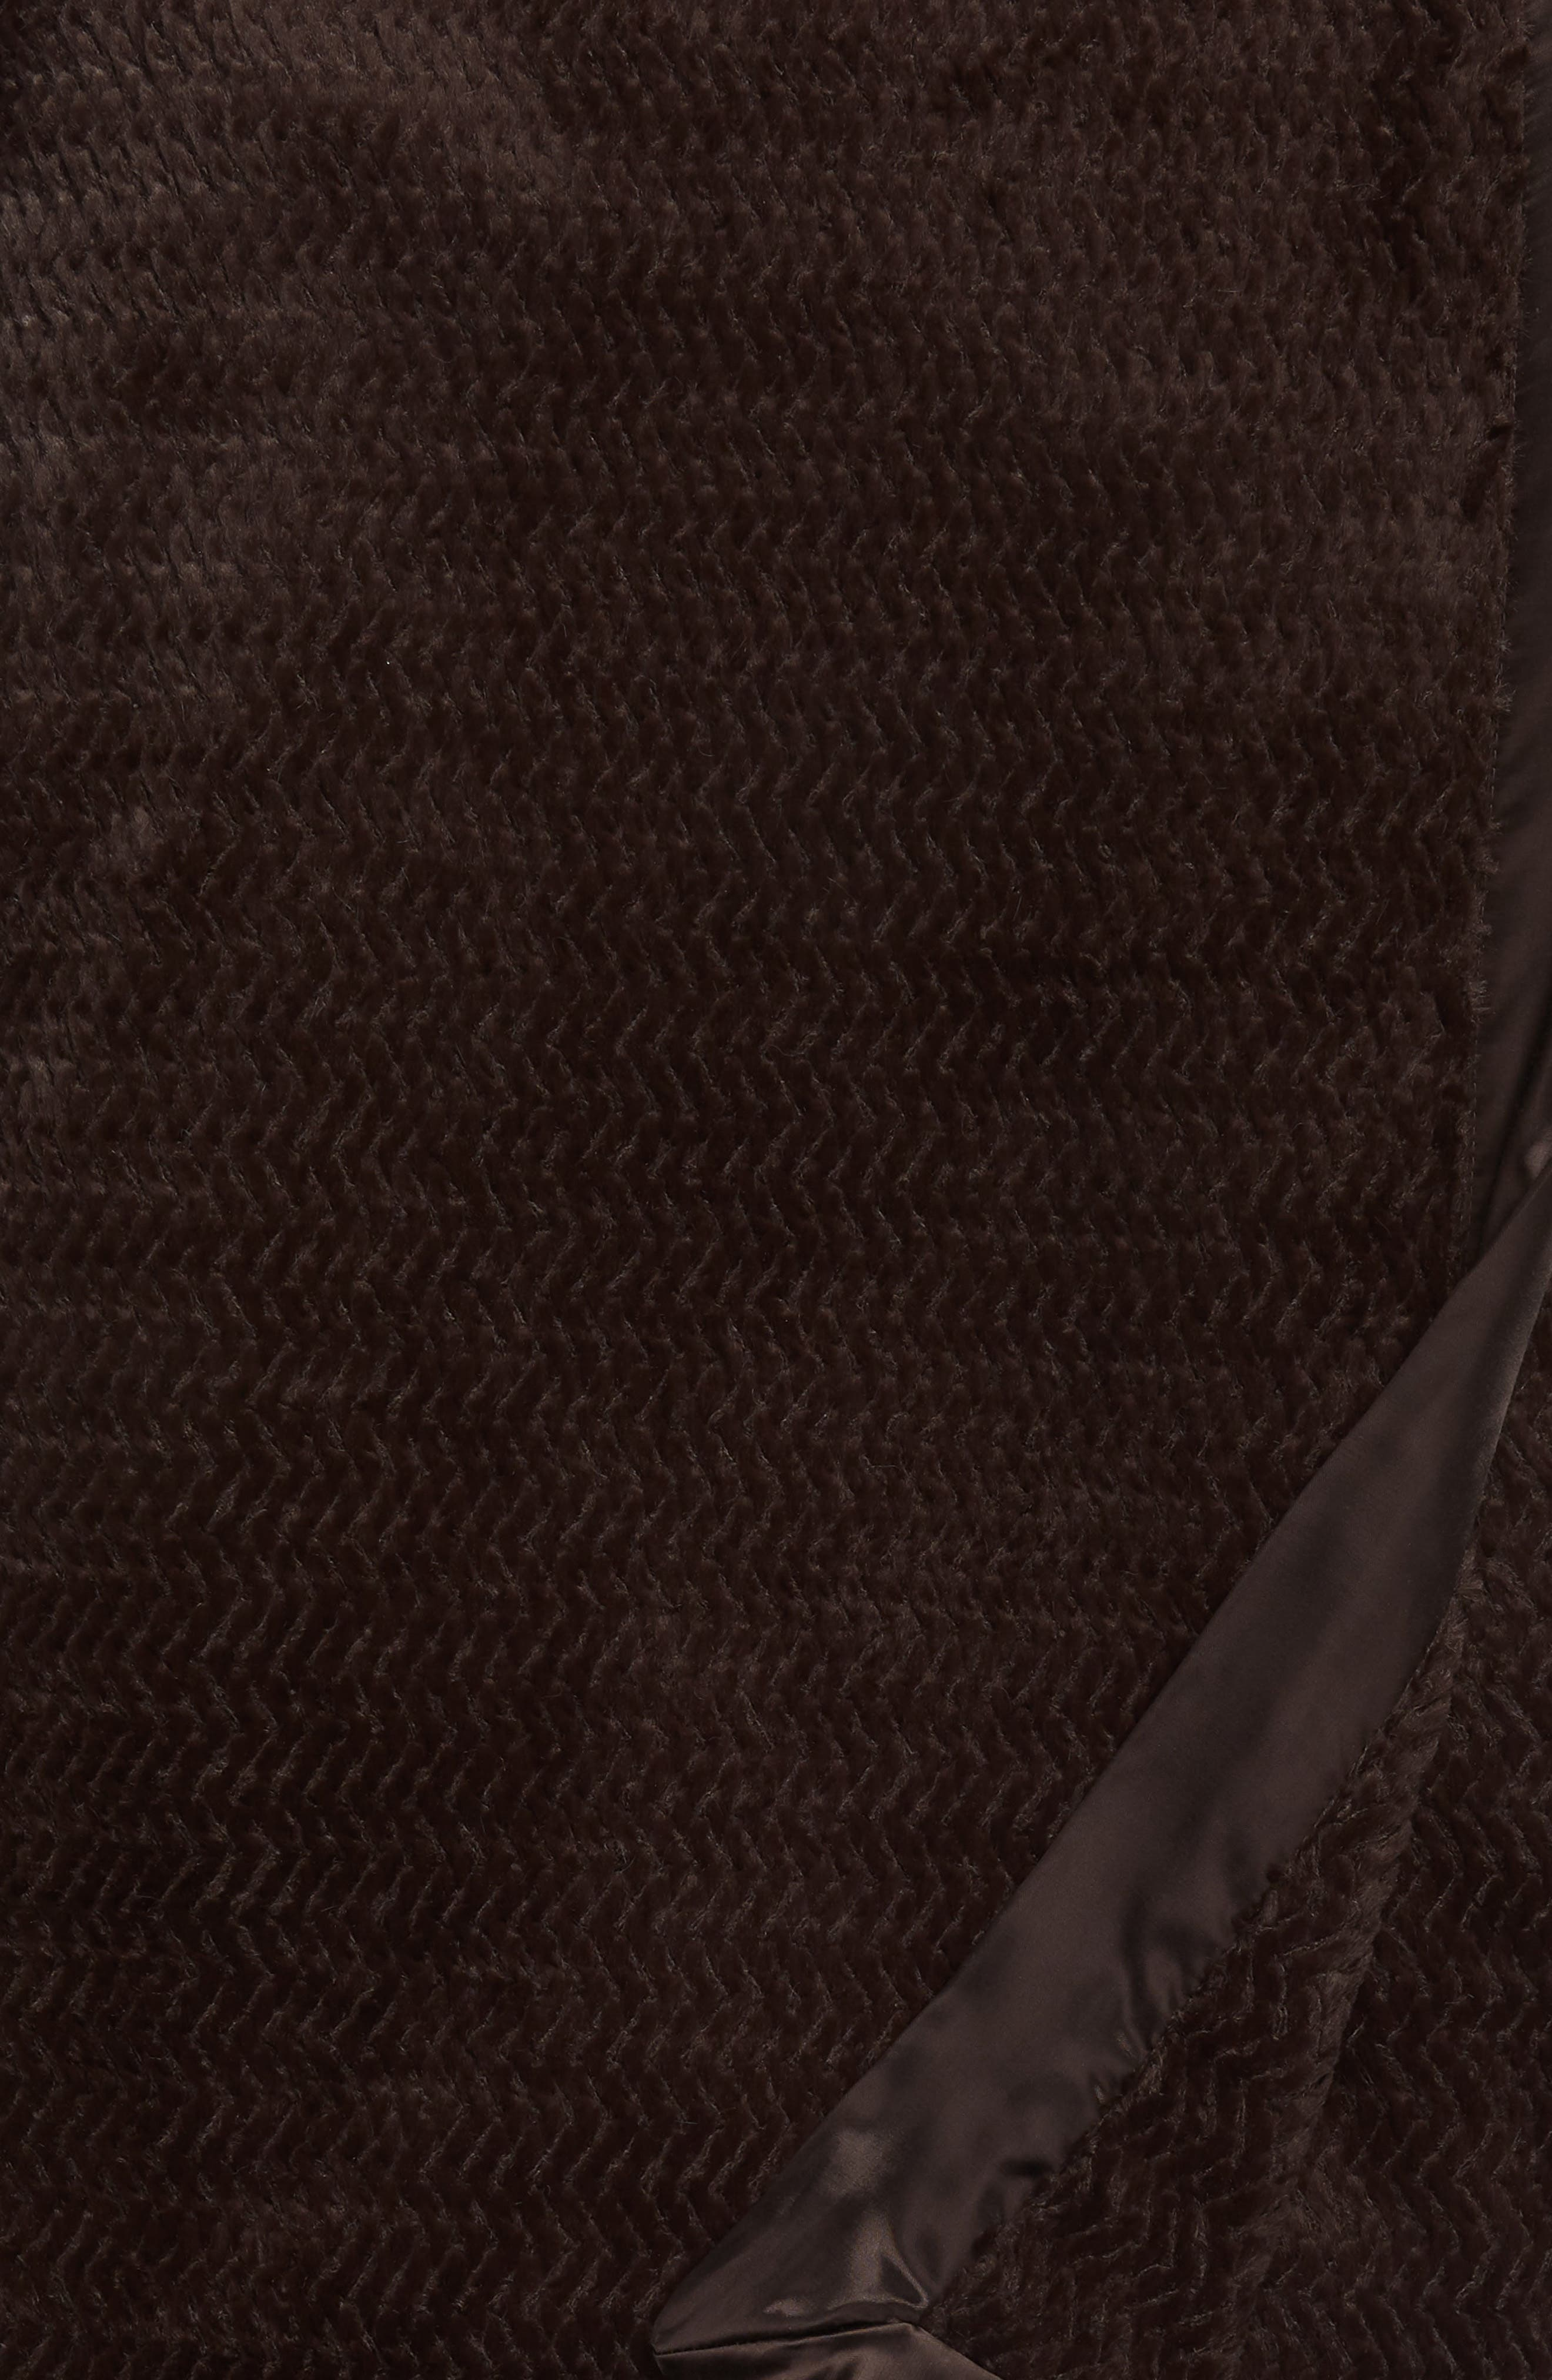 Luxe Twist Throw,                             Alternate thumbnail 2, color,                             Chocolate